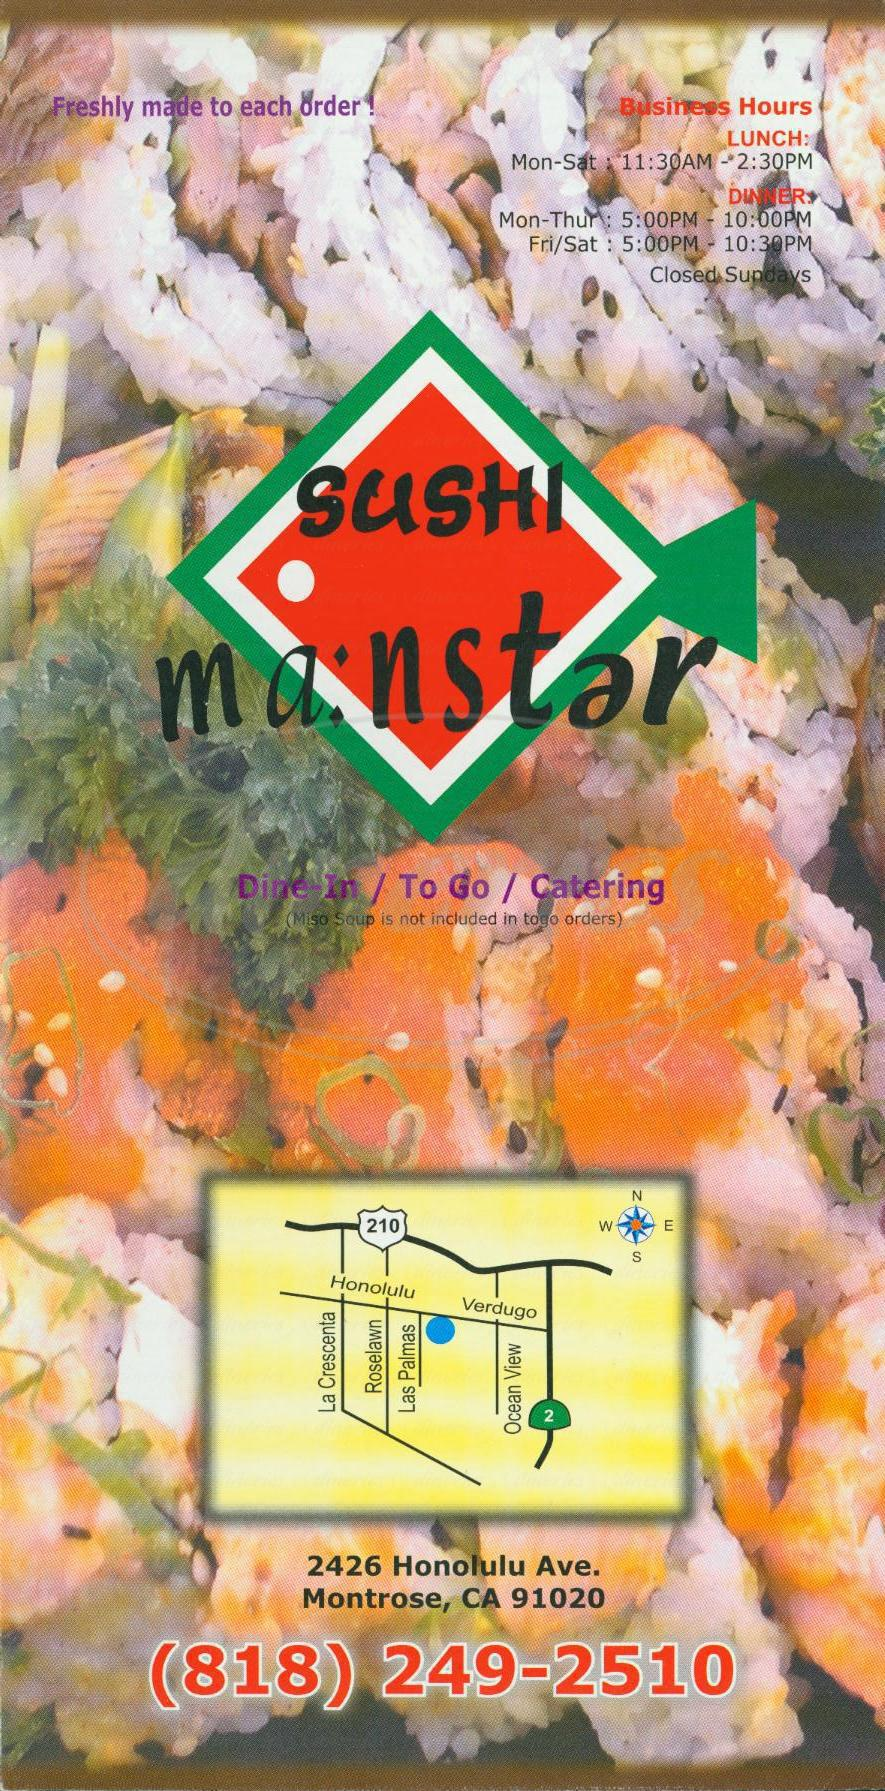 menu for Sushi Ma nster